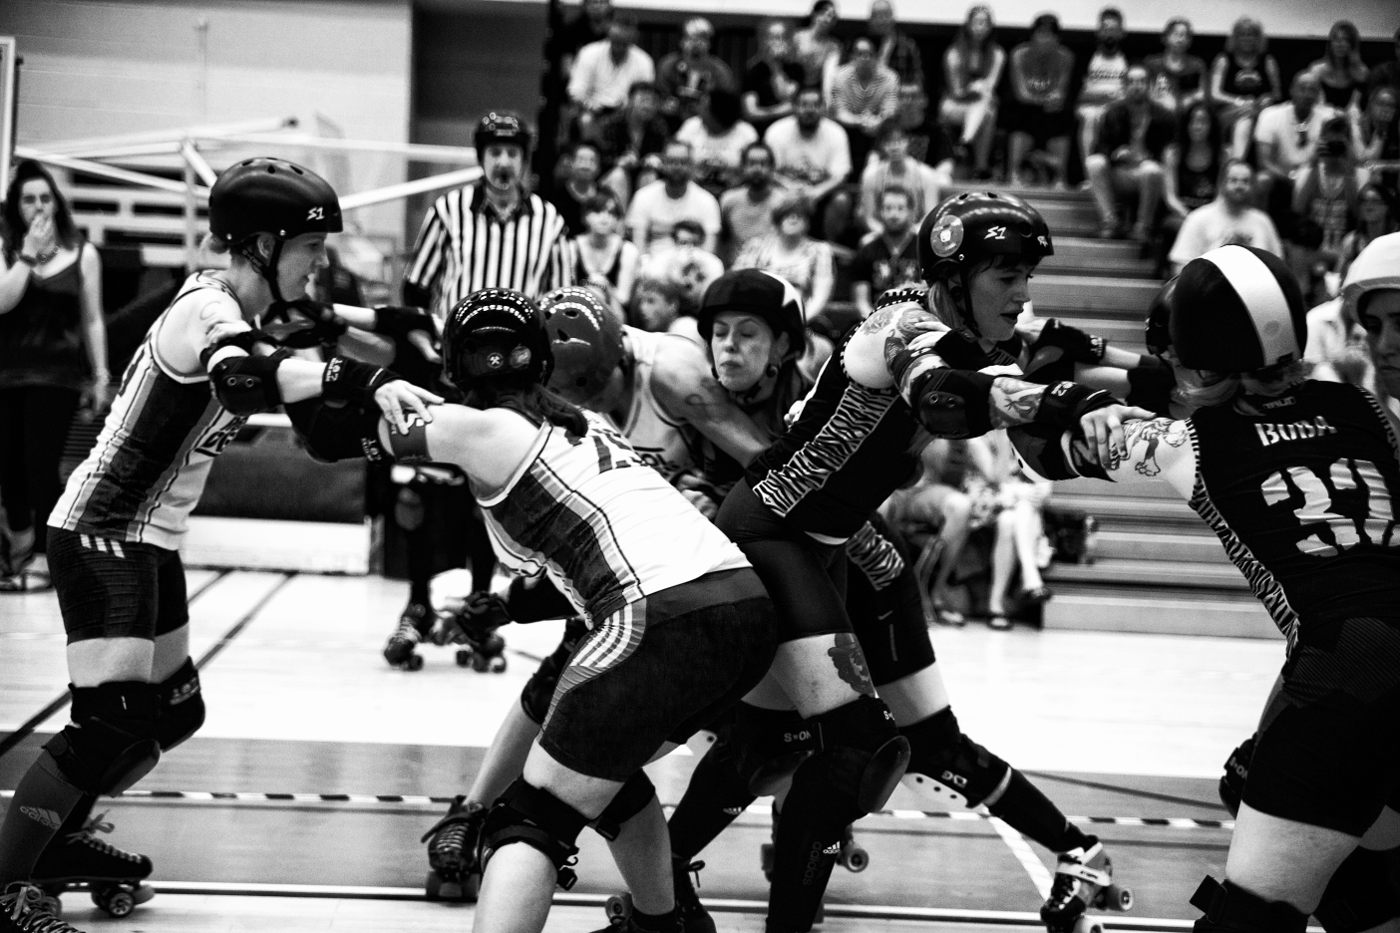 clash of women all bumping in to each other!